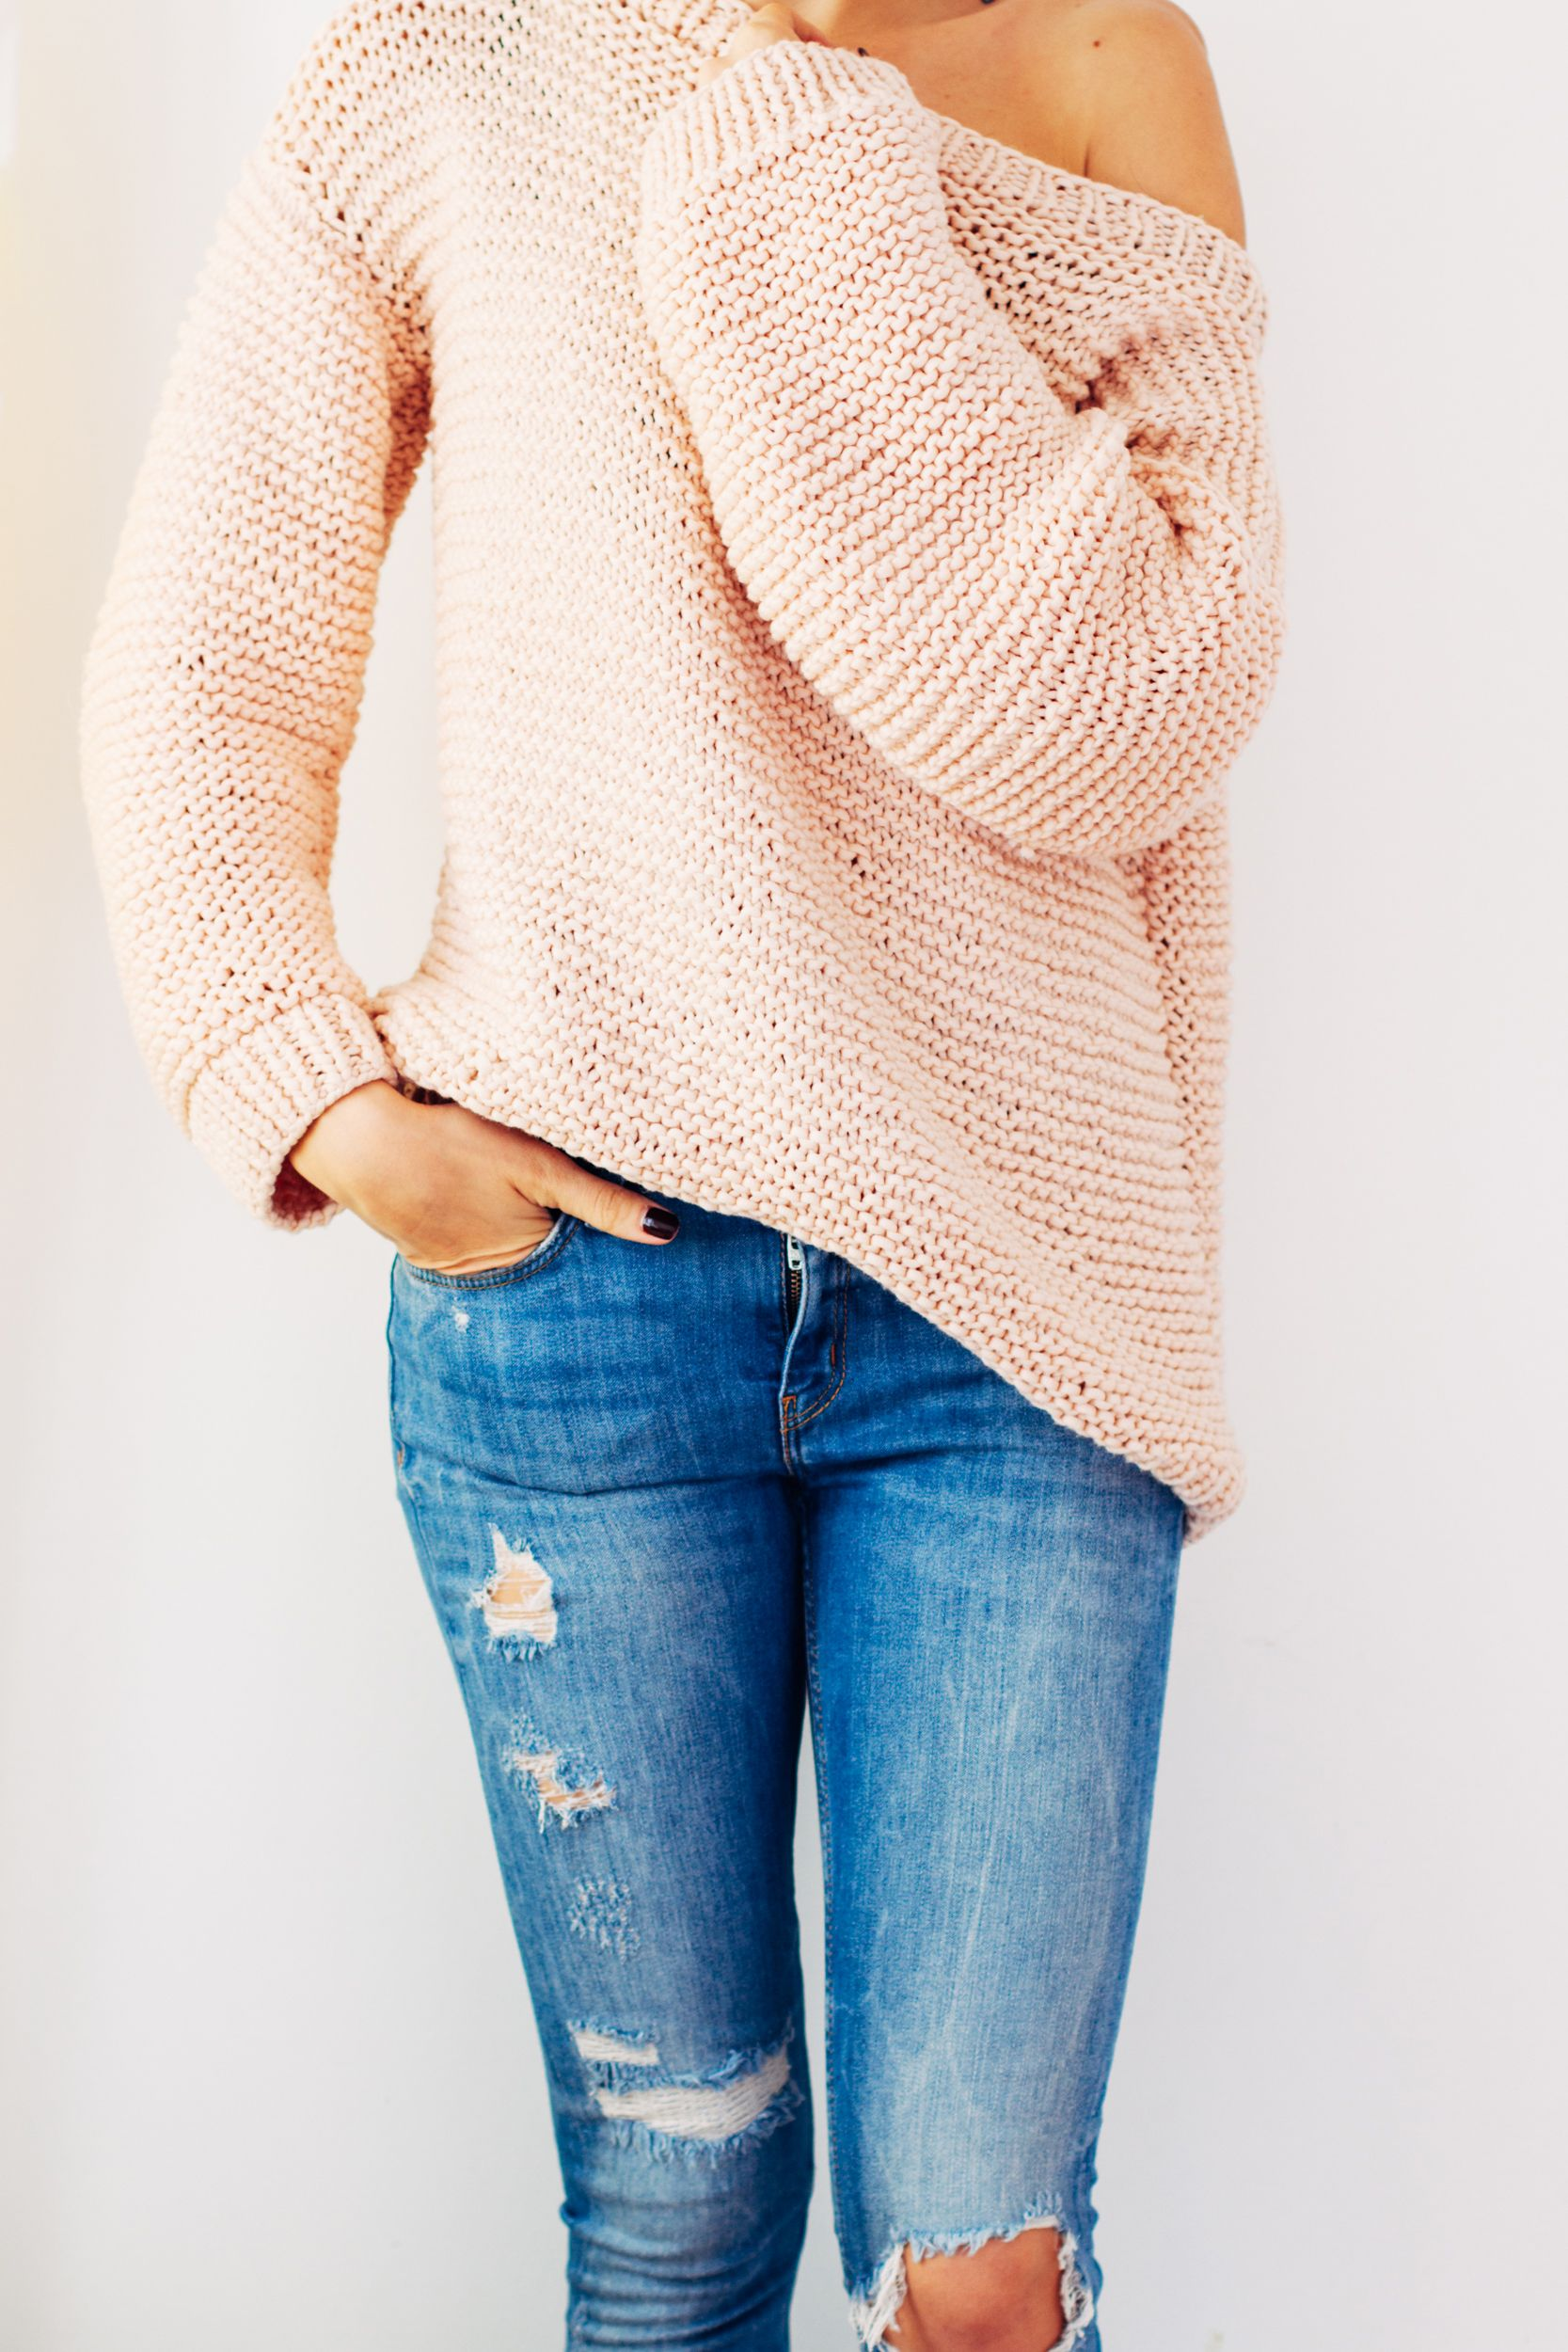 Knit A Sweater Easy : Diy oversize knitted sweater craft pinterest